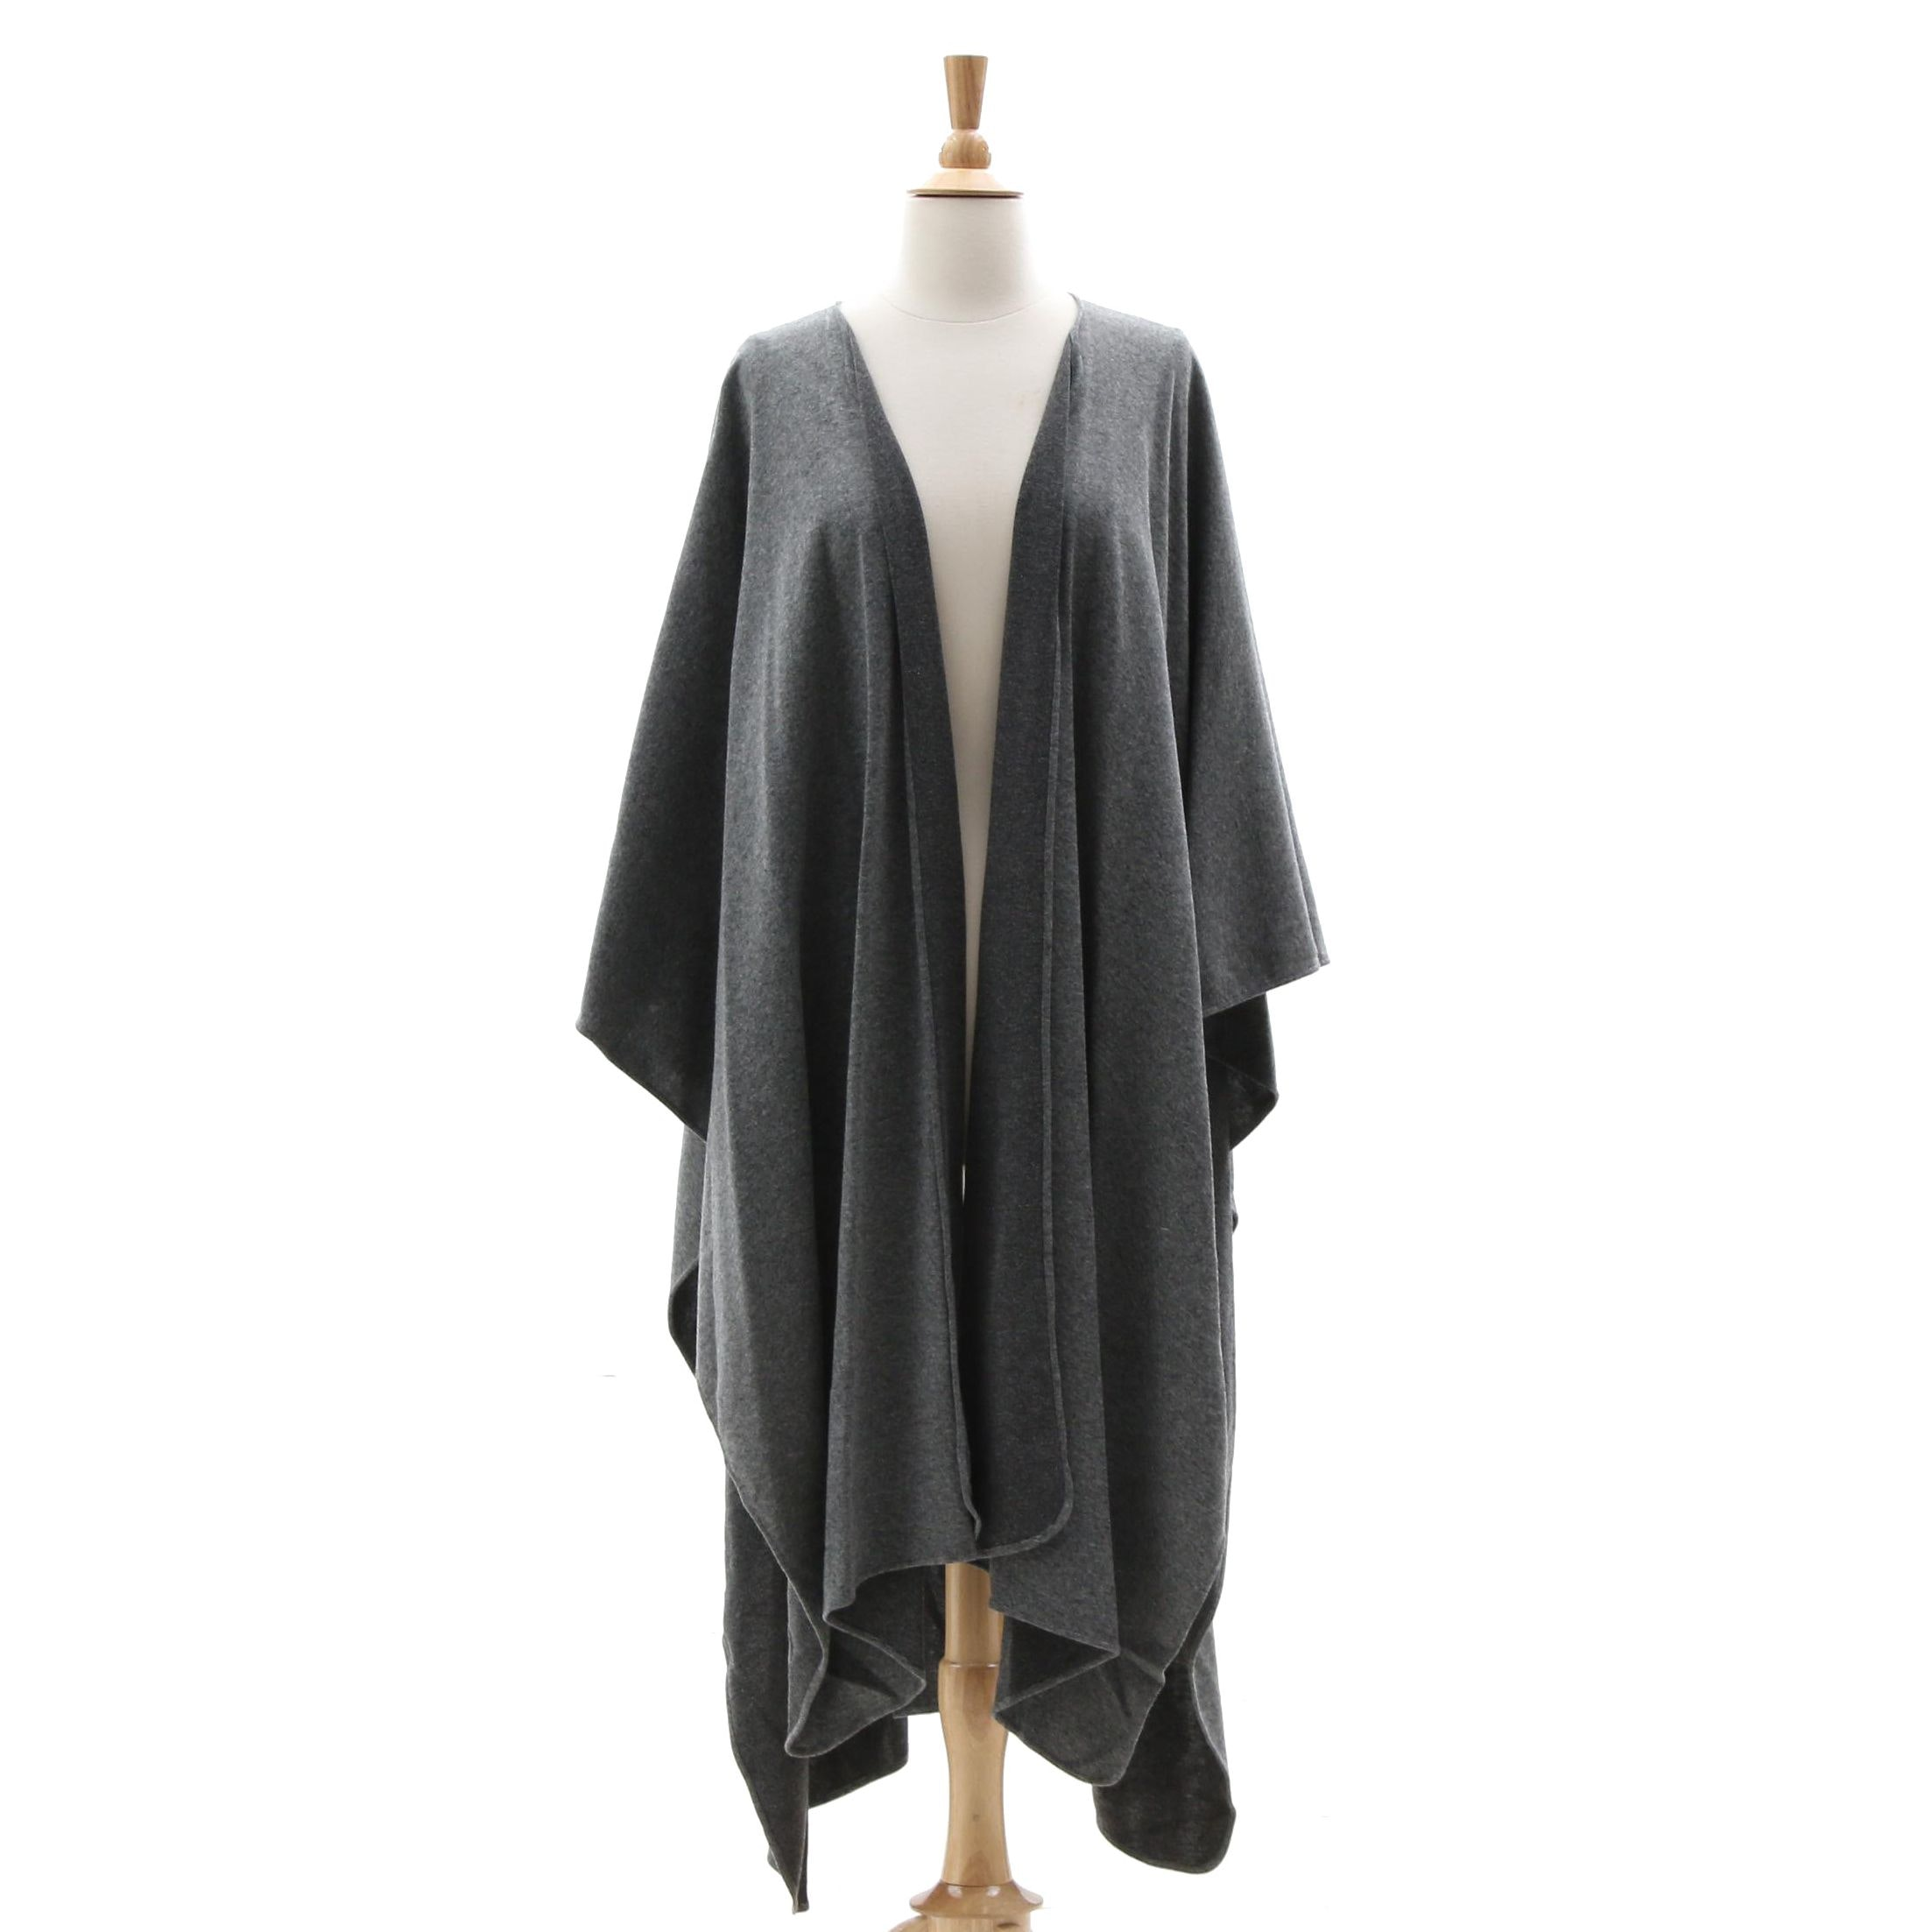 Victor Costa Gray Knit Shawl